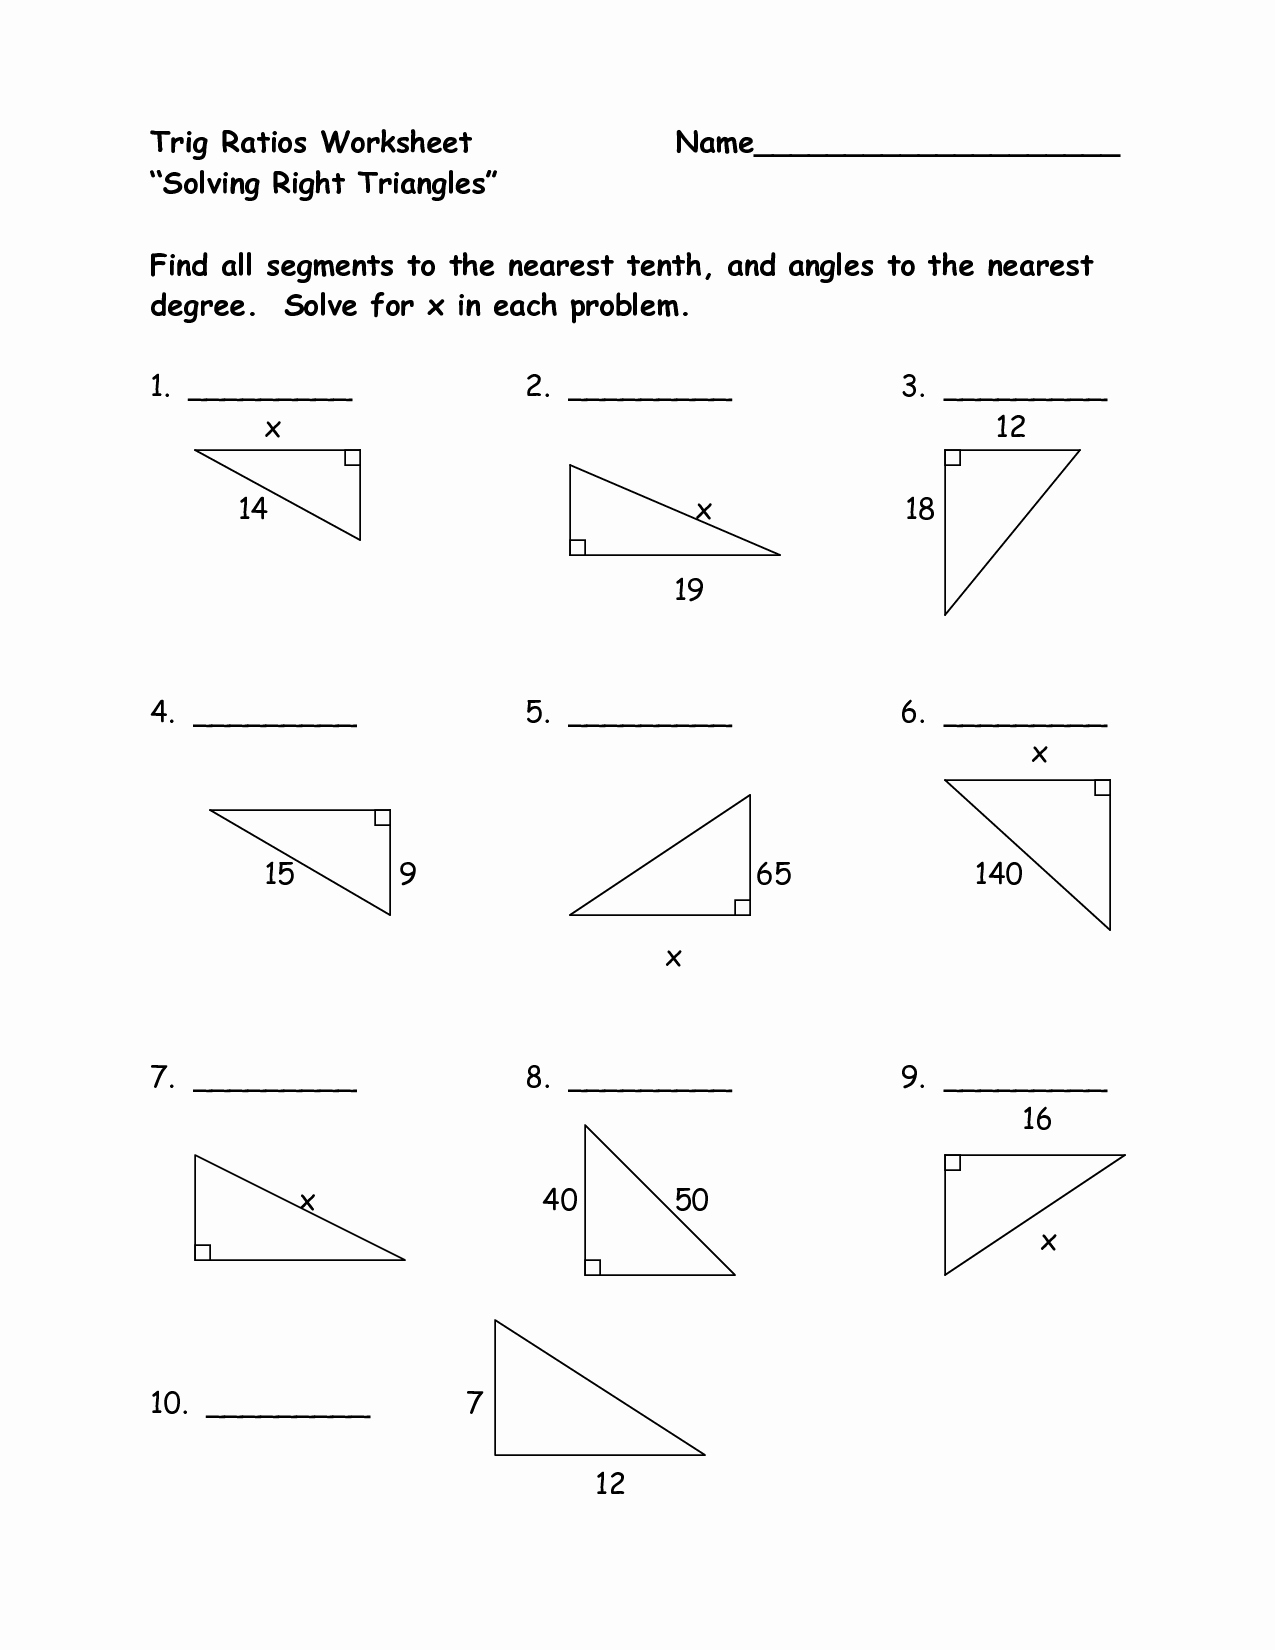 Right Triangle Trigonometry Worksheet Answers Fresh Trigonometry Ratios Worksheet Answers